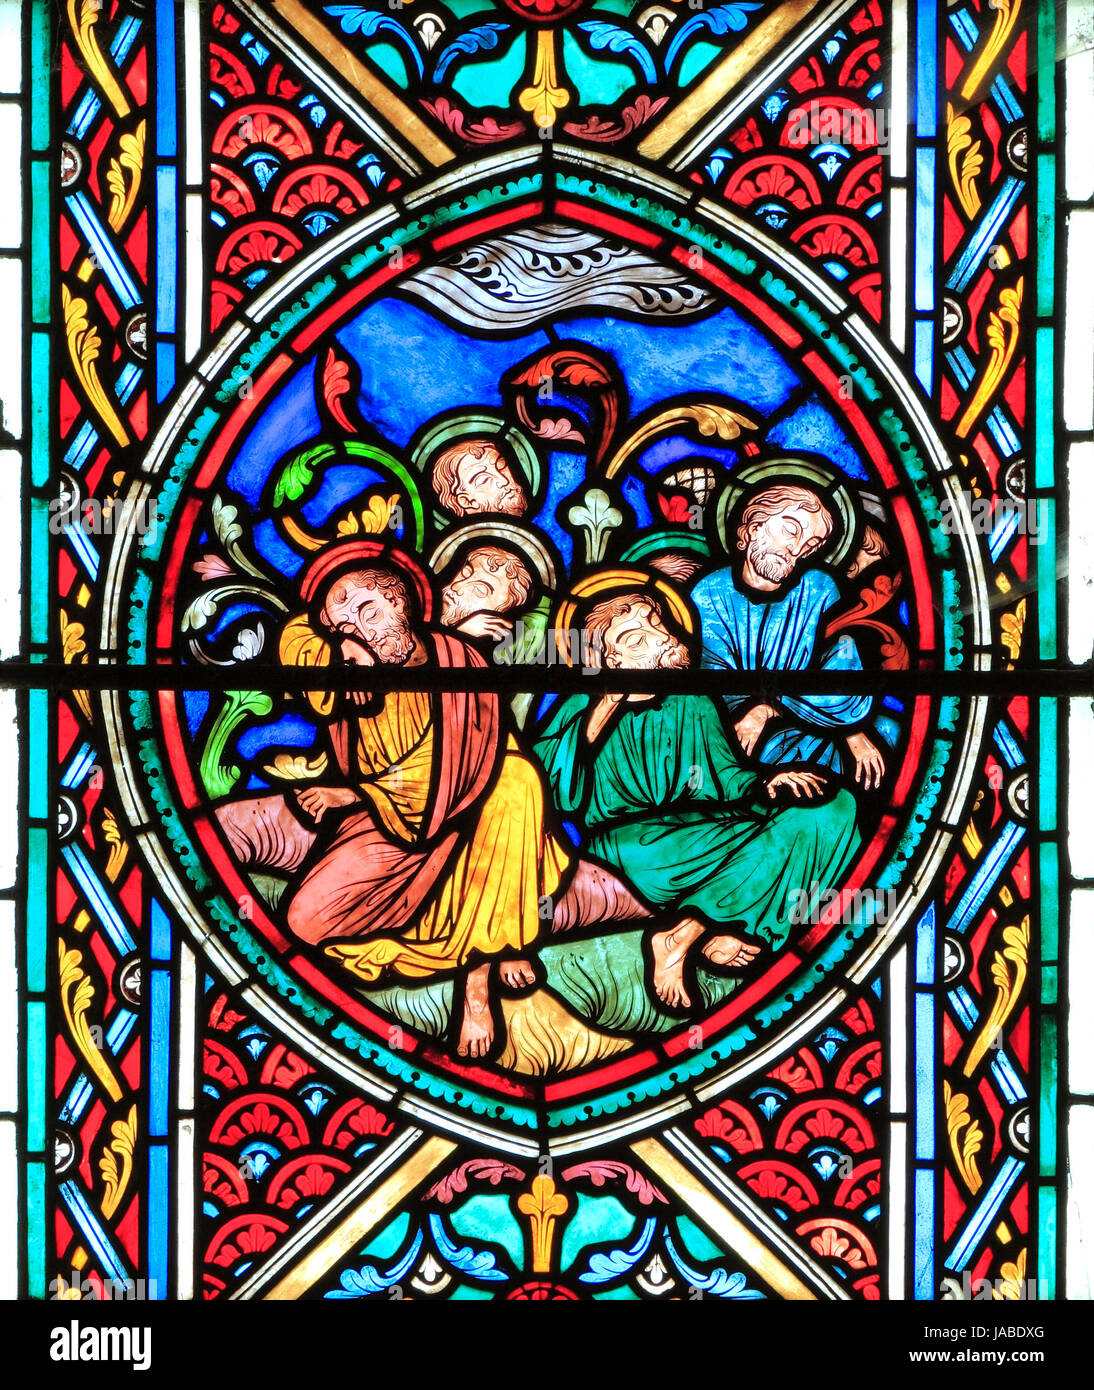 The Passion Window, Garden of Gethsemane, Jesus' Disciples sleeping, stained glass by Didron of Paris, 1860, - Stock Image